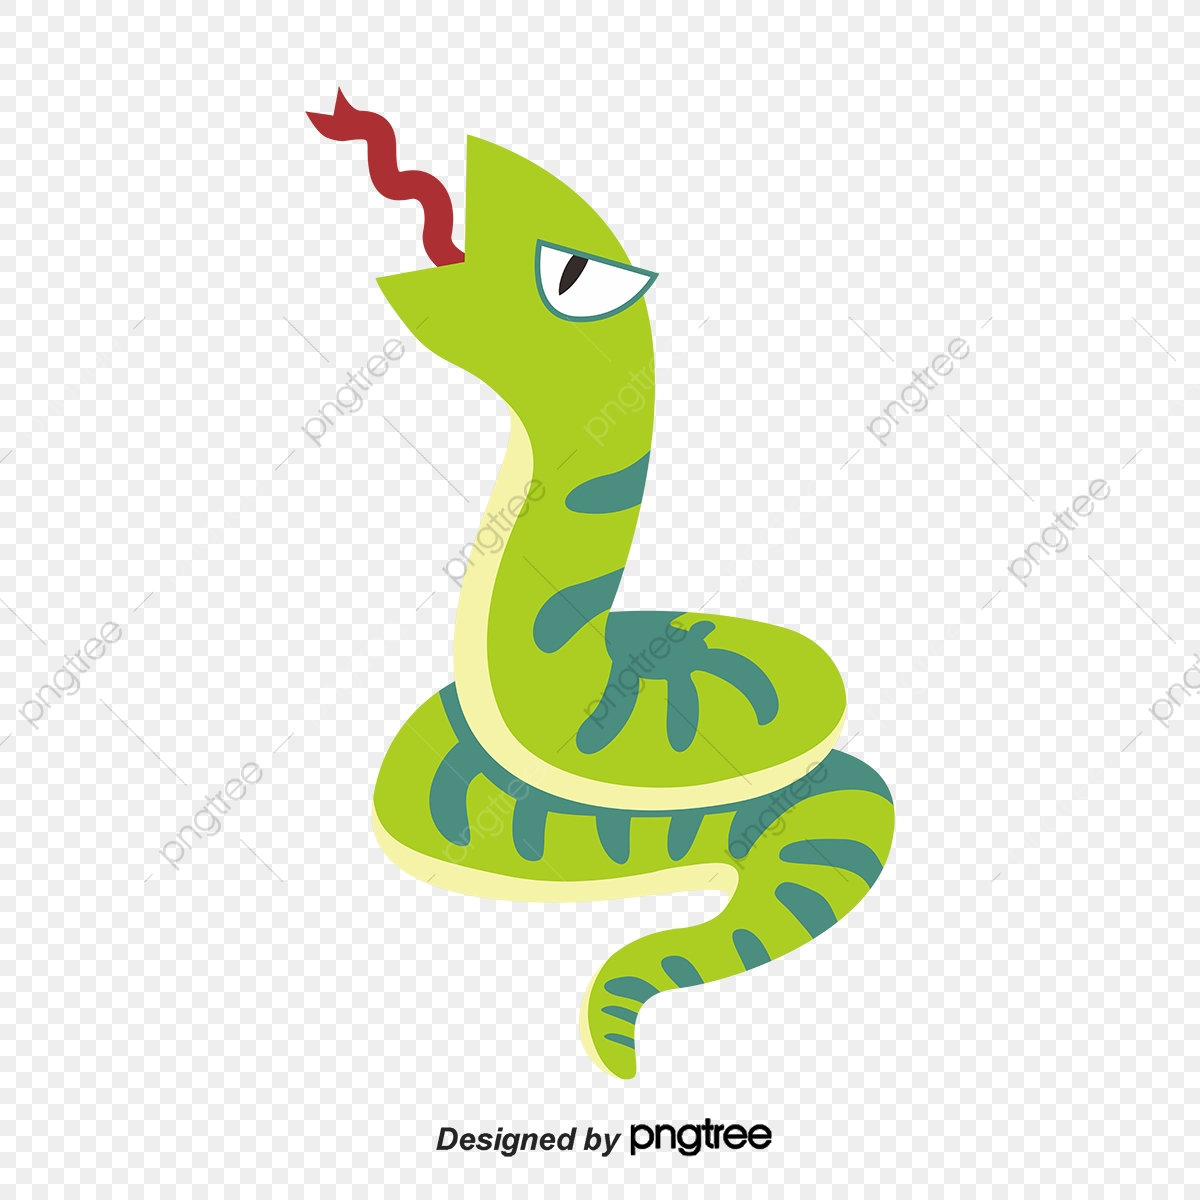 Cartoon Green Speaking Snake Animal Cartoon Vectors Png And Vector With Transparent Background For Free Download If you like, you can download pictures in icon format or directly in png image format. https pngtree com freepng cartoon green speaking snake 4178879 html